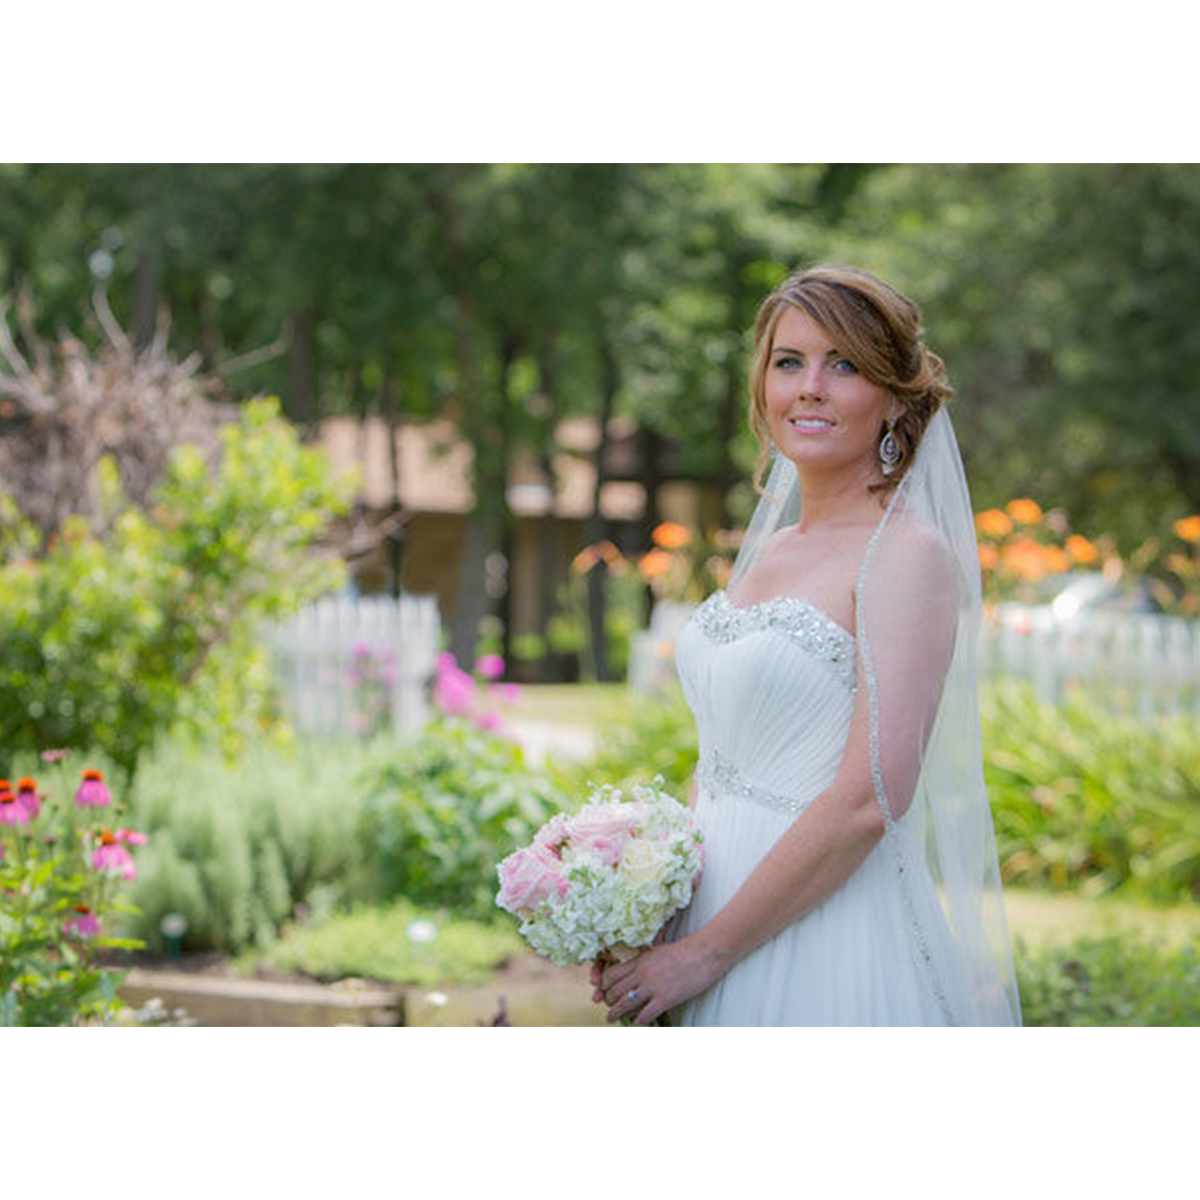 Bride in a white dress and veil poses in a garden with a pink and green boquet photo